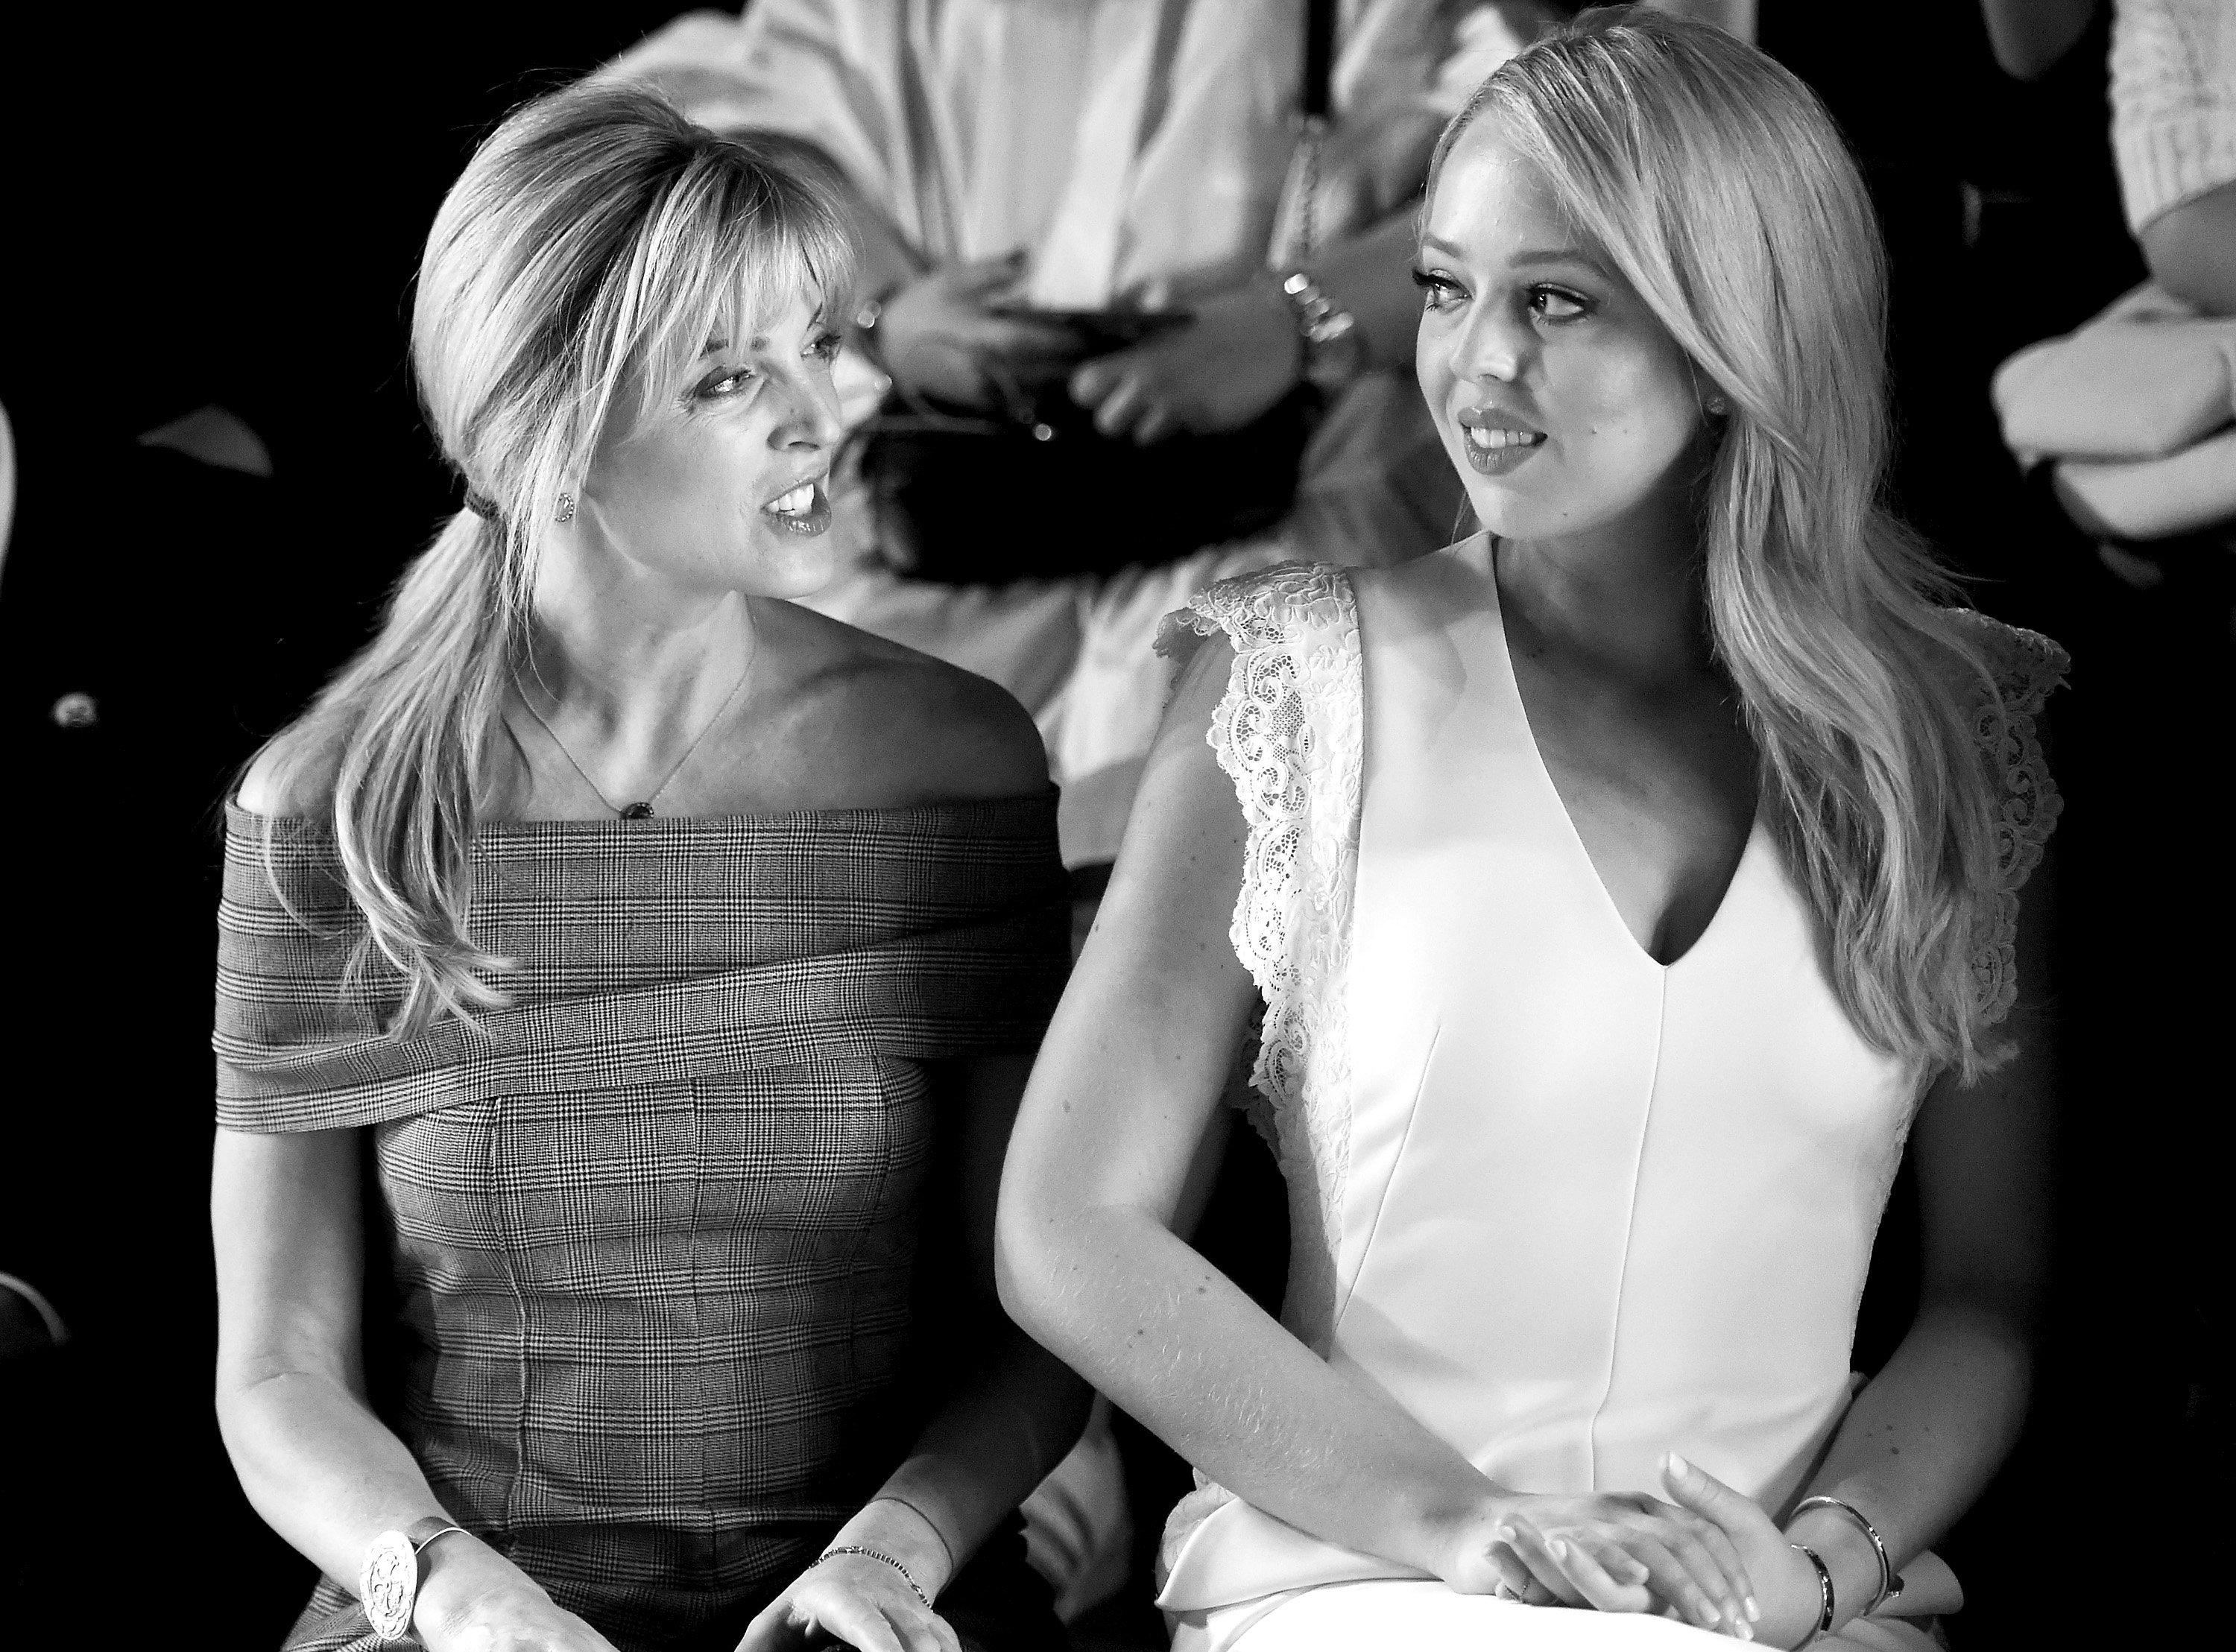 Marla Maples and Tiffany Trump at the Taoray Wang collection during, New York Fashion Week | Photo: Getty Images